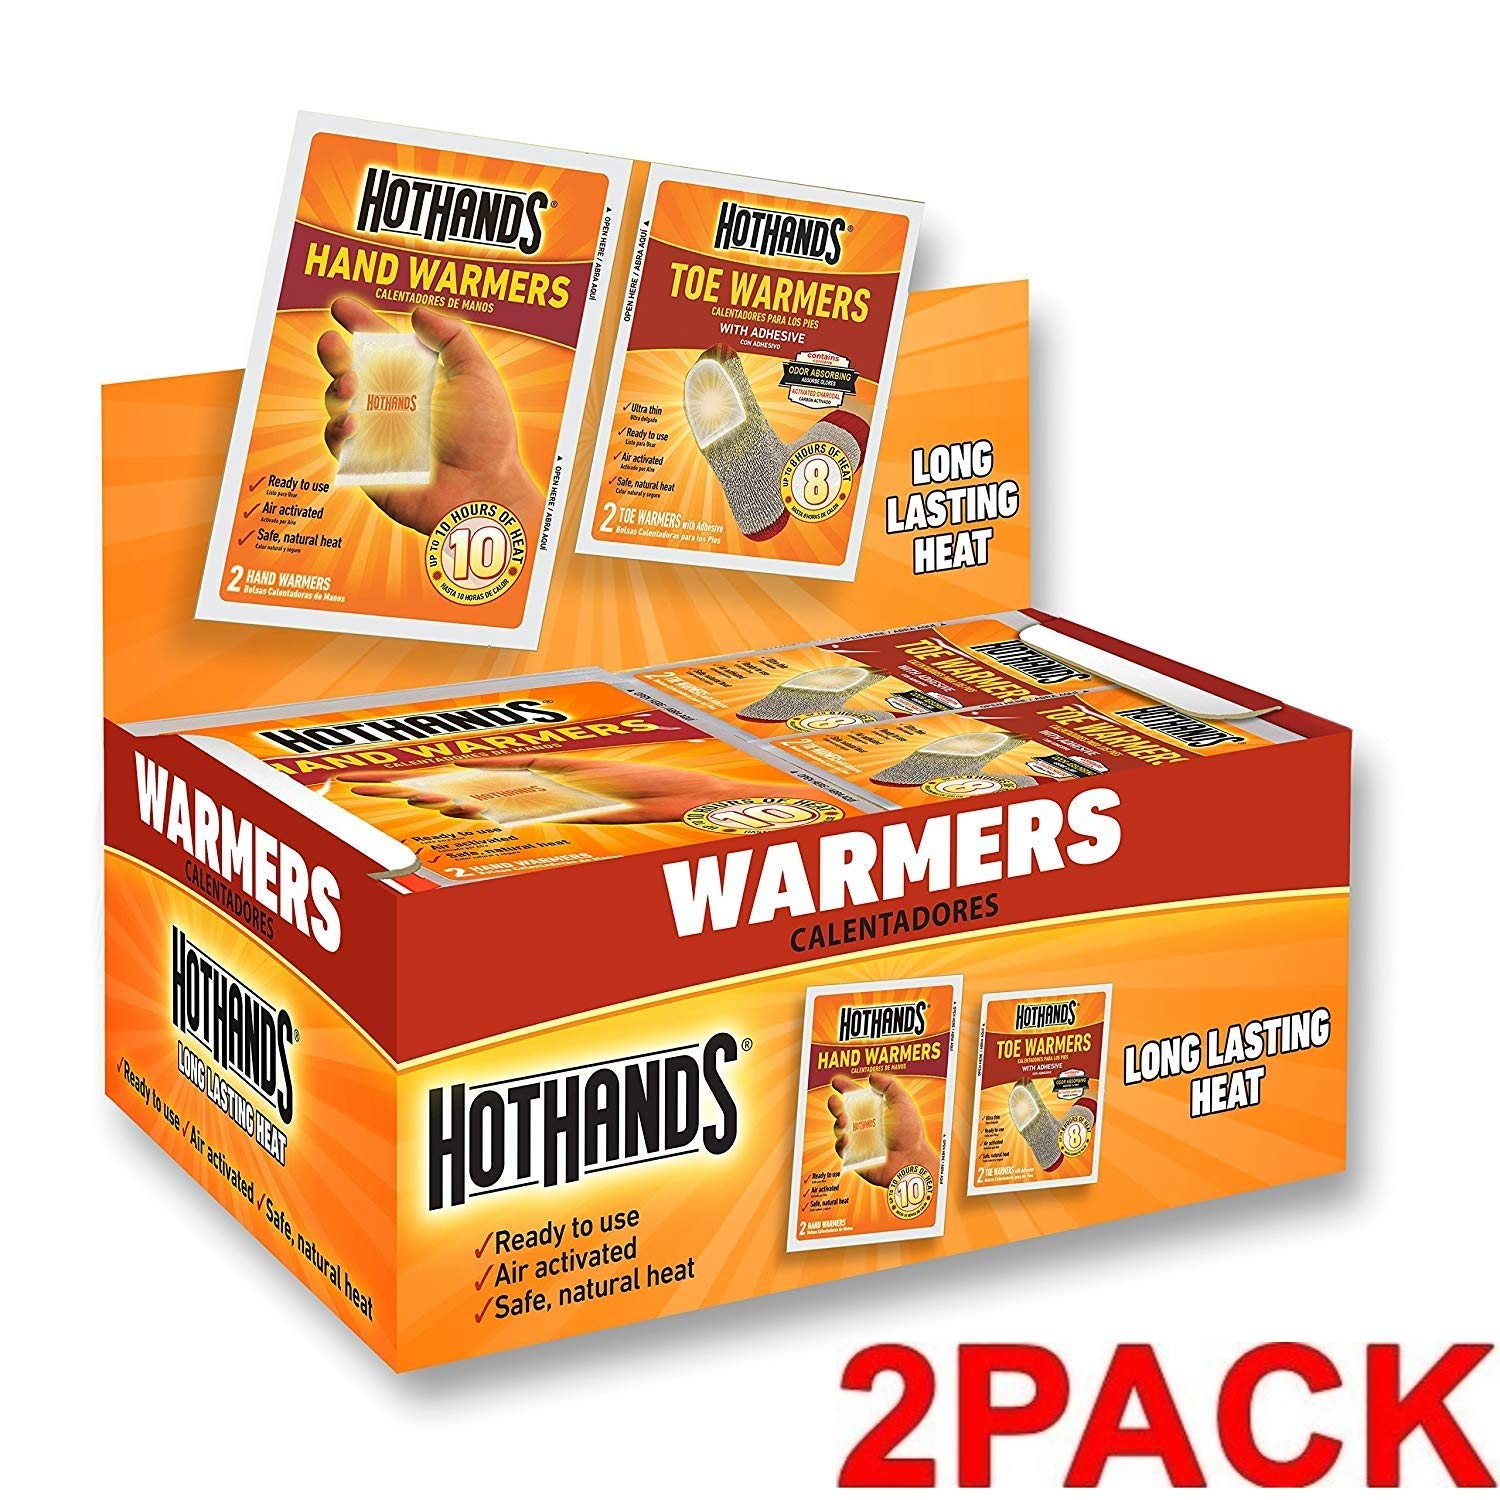 HotHands Hand & Toe Warmers - Long Lasting Safe Natural Odorless Air Activated Warmers - 24 Pair of Hand Warmers & 8 Pair of Toe Warmers (2 Pack) by HotHands